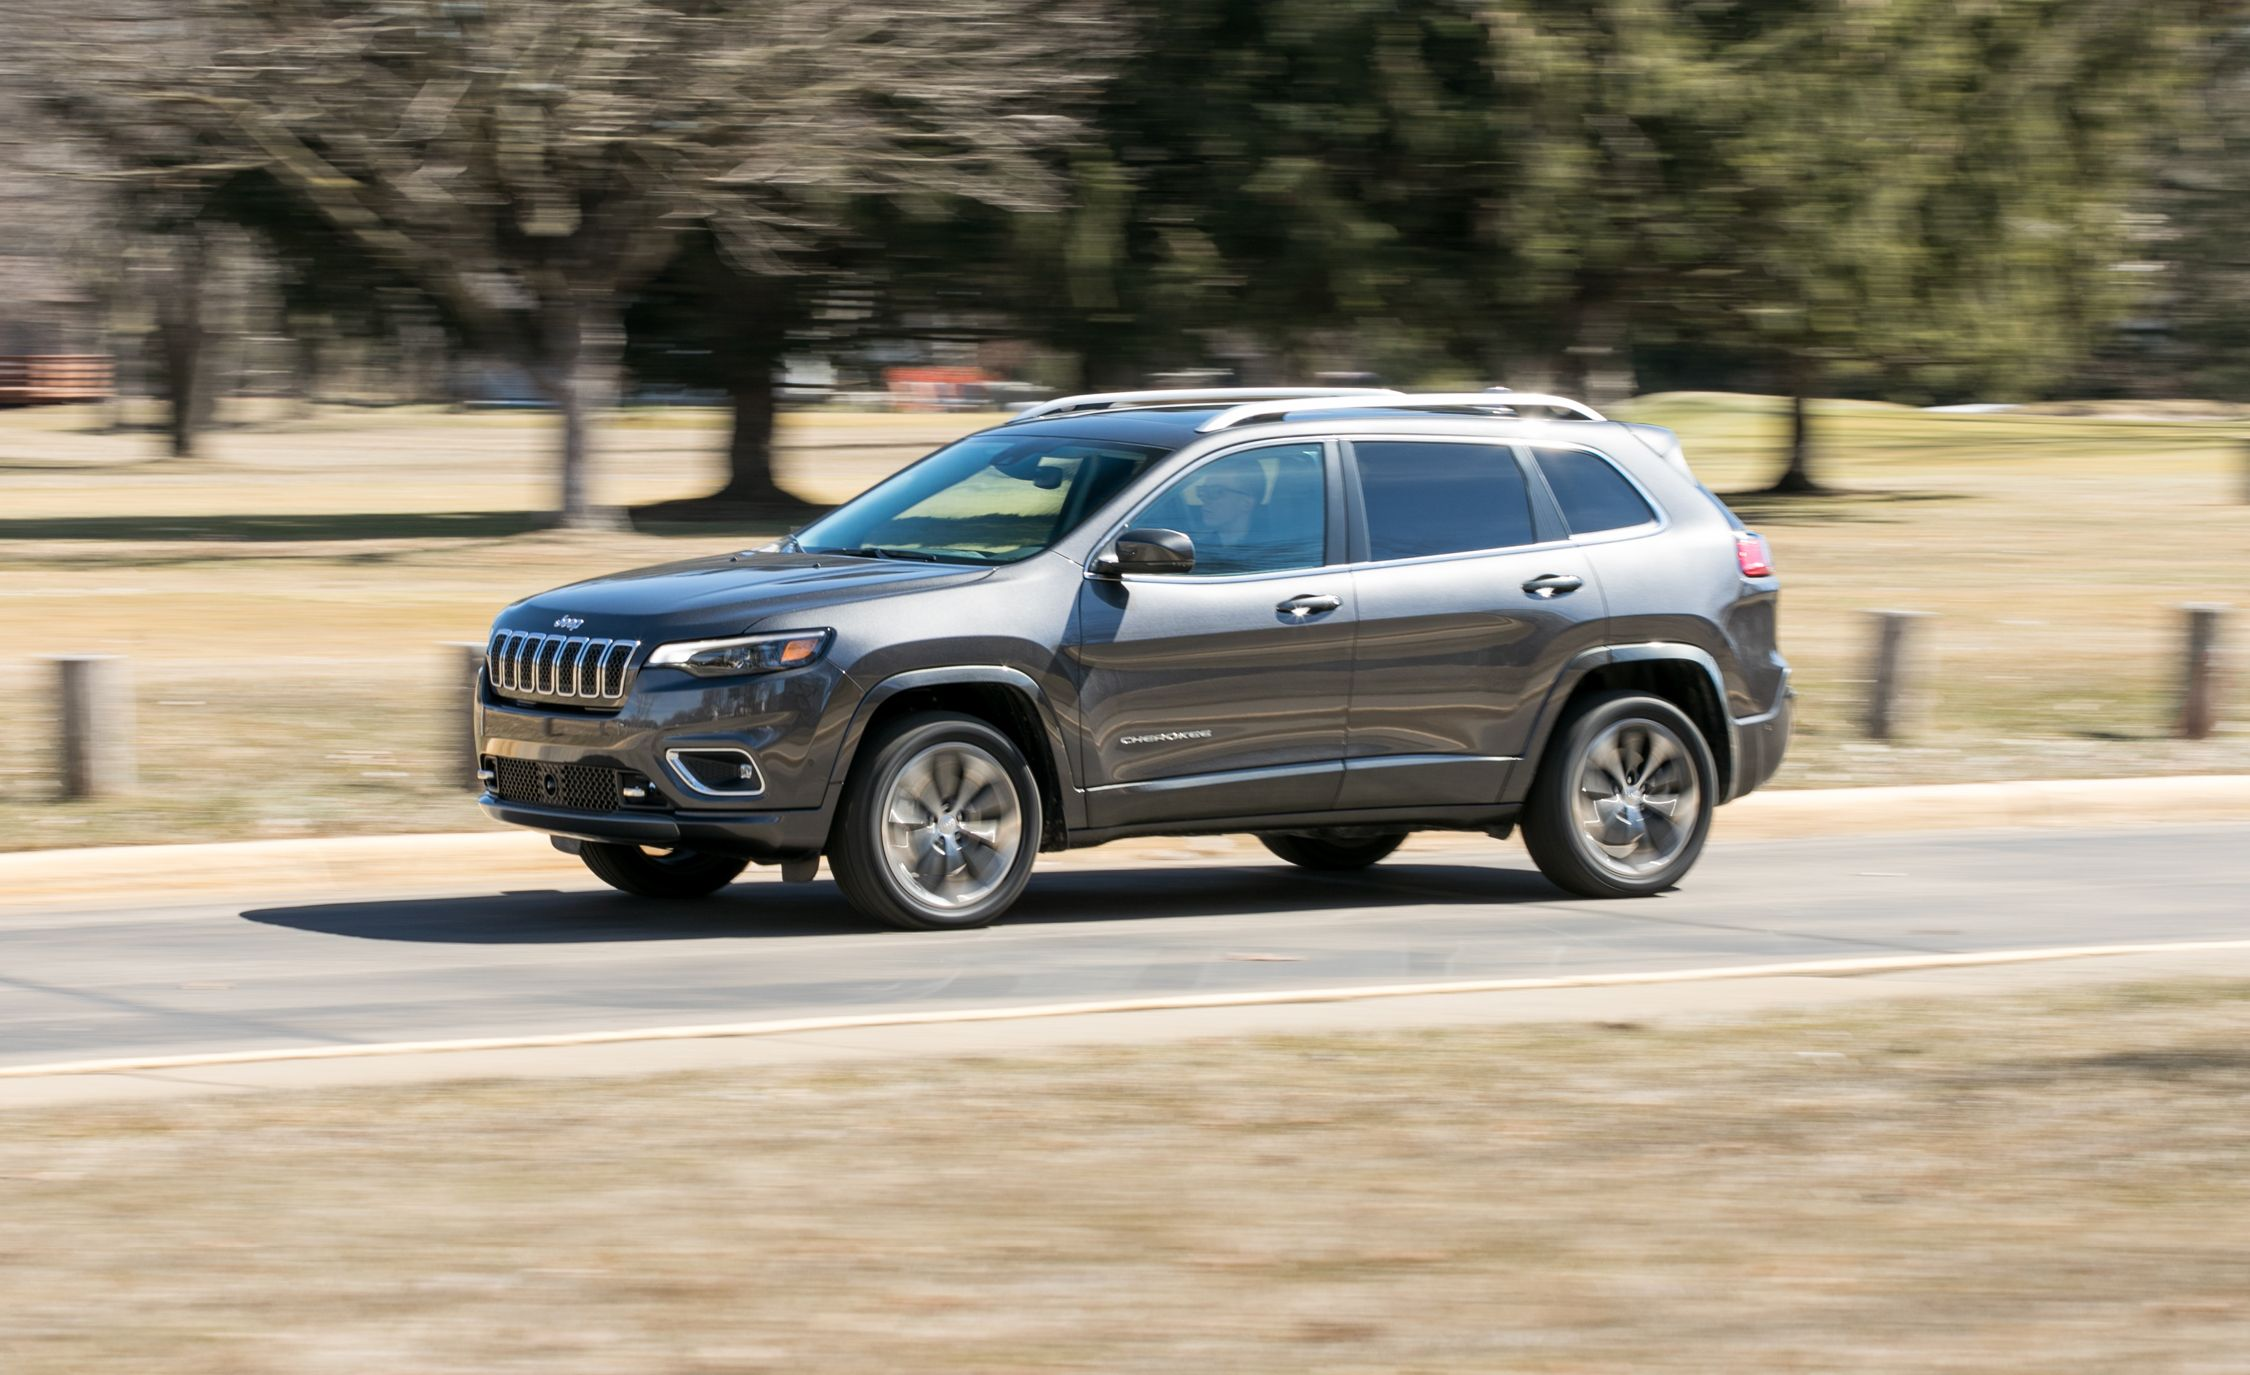 2019 Jeep Cherokee V 6 Awd Test It S Just Okay Review Car And Driver